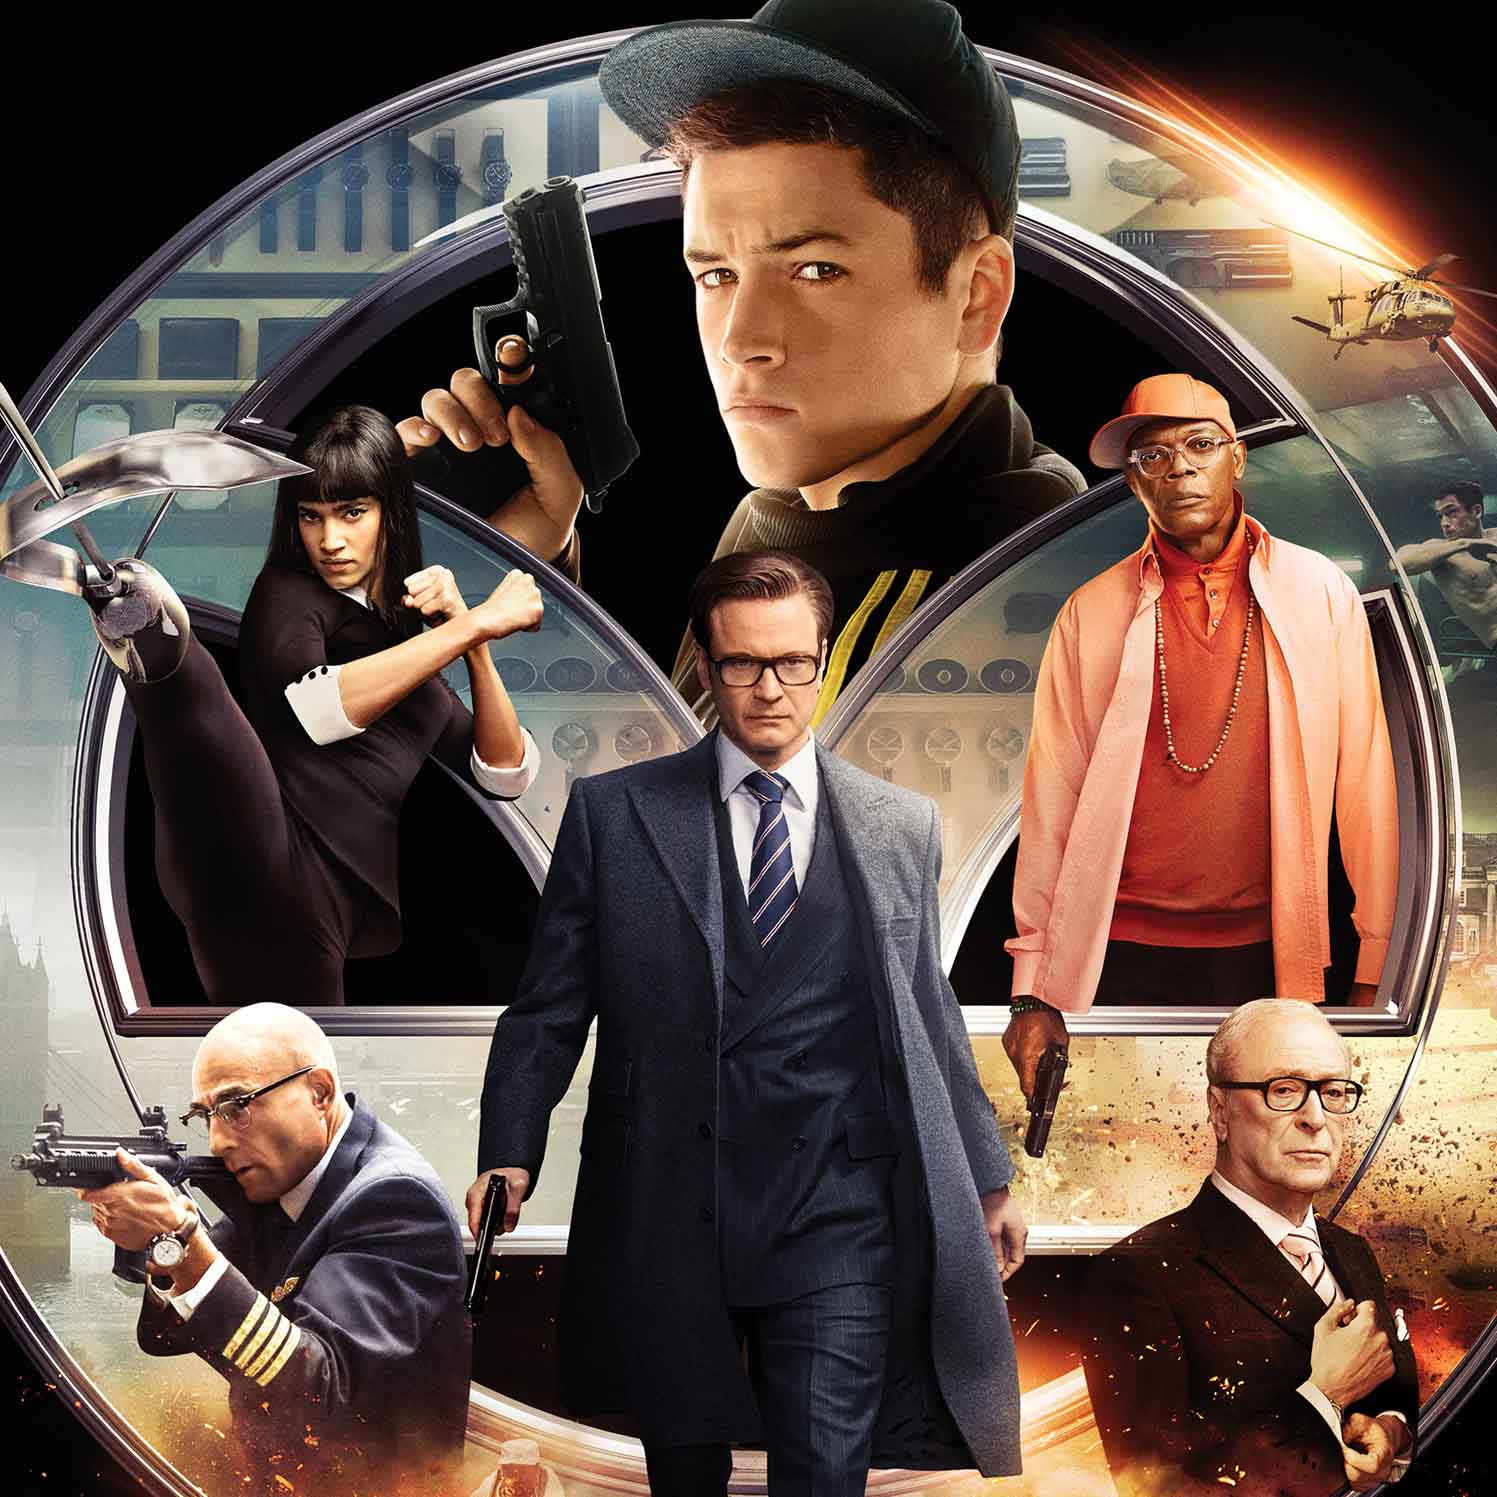 Kingsman: The Secret Service - Fish and Connor Saw a Movie